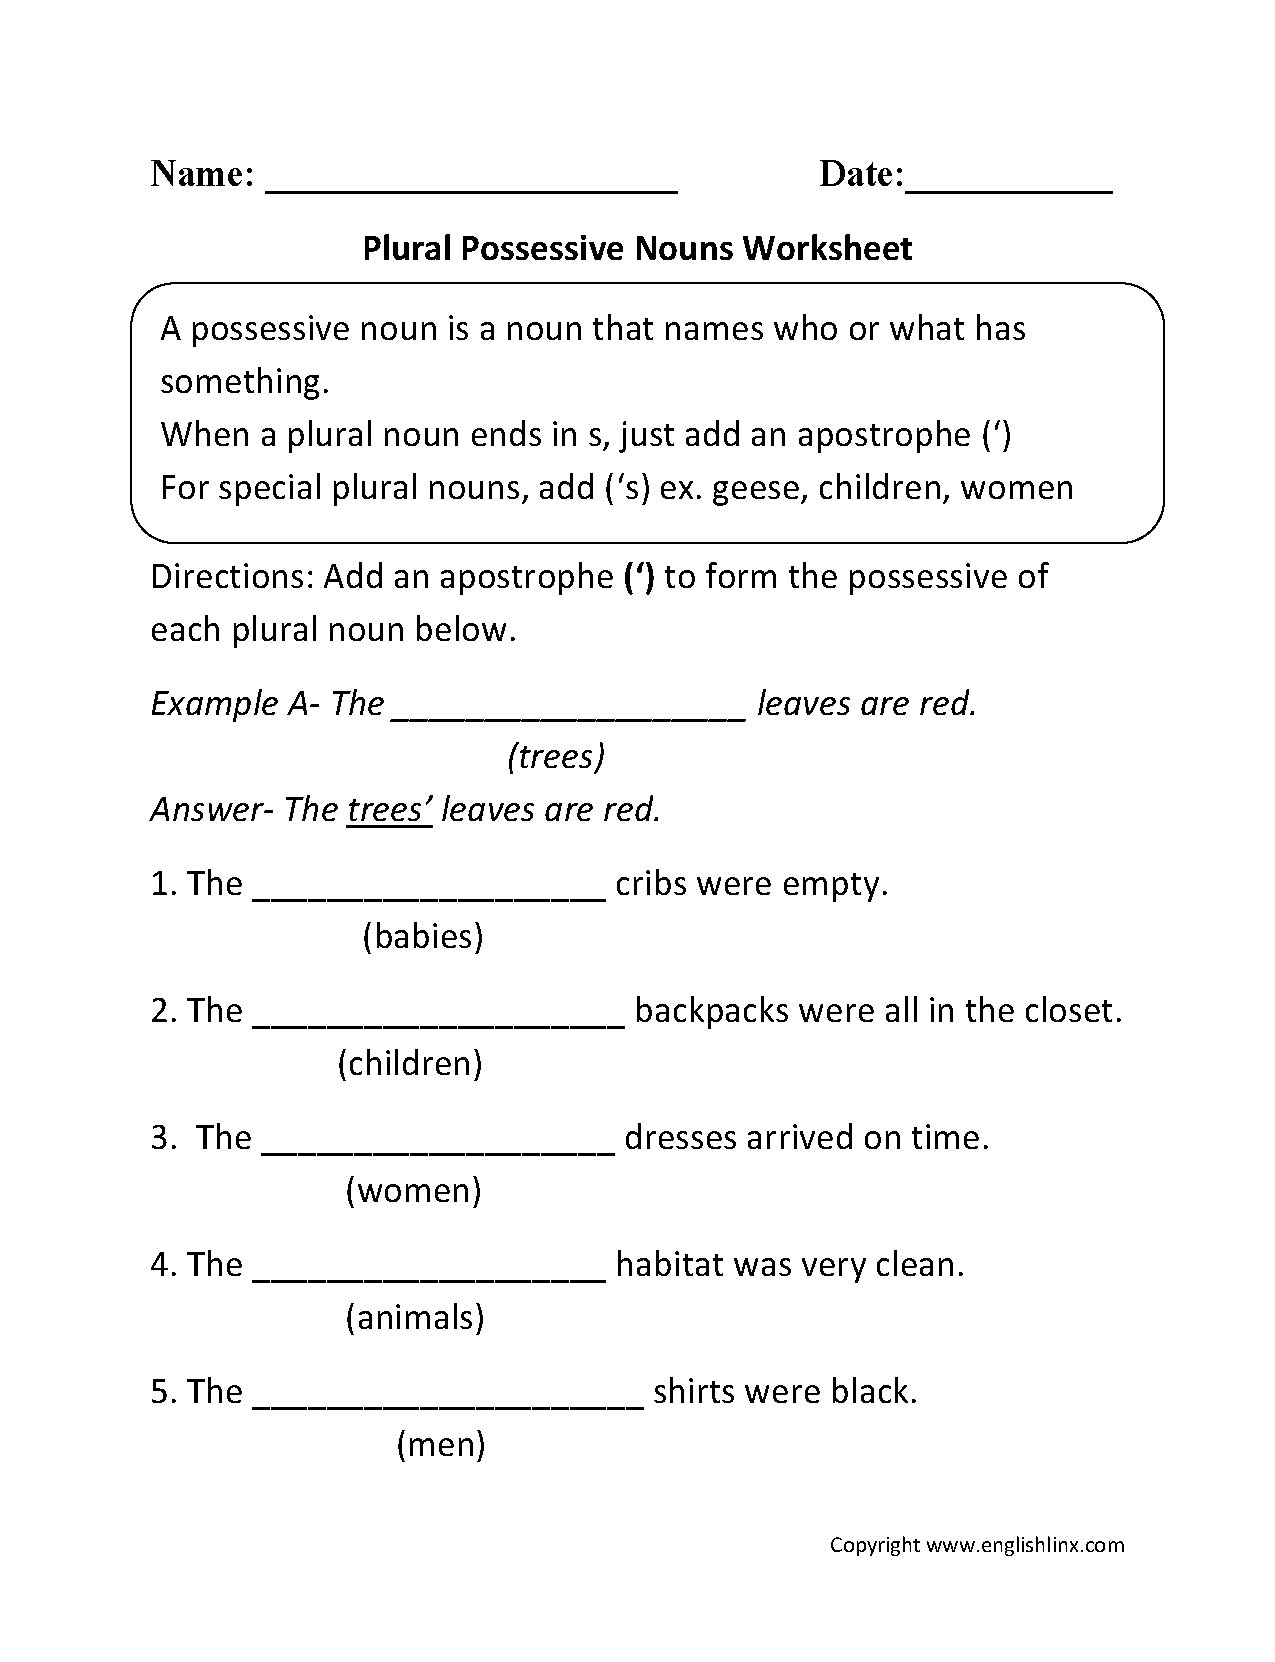 Aldiablosus  Splendid Nouns Worksheets  Possessive Nouns Worksheets With Remarkable Possessive Nouns Worksheets With Lovely Planet Worksheets For Kids Also Put First Things First Worksheet In Addition Irony Worksheet For Middle School And Average Velocity Worksheet As Well As Ratios Proportions And Percents Worksheets Additionally Crusades Worksheets From Englishlinxcom With Aldiablosus  Remarkable Nouns Worksheets  Possessive Nouns Worksheets With Lovely Possessive Nouns Worksheets And Splendid Planet Worksheets For Kids Also Put First Things First Worksheet In Addition Irony Worksheet For Middle School From Englishlinxcom